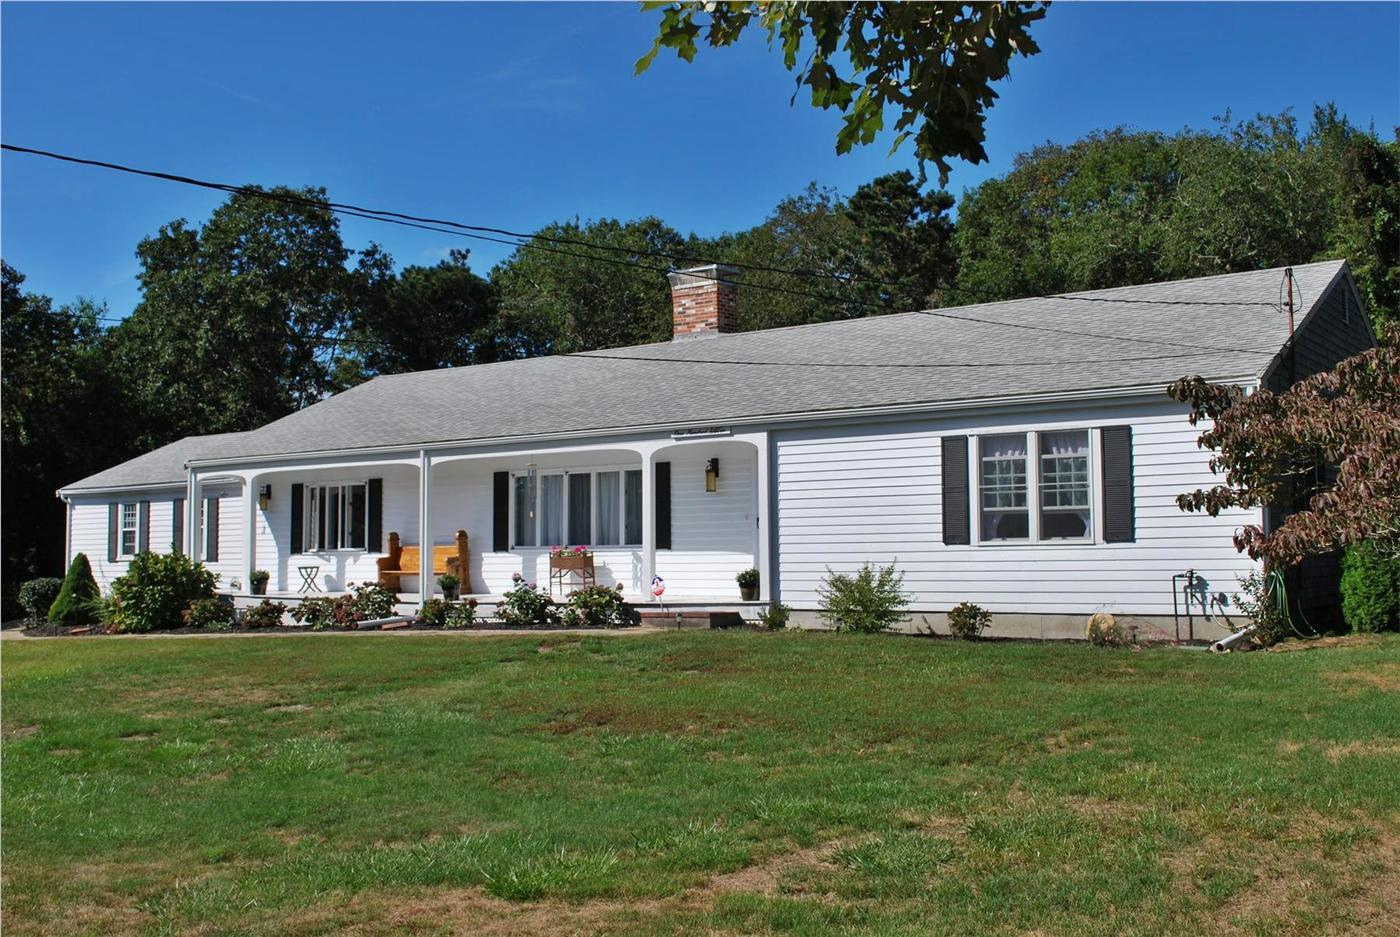 Dennis Vacation Rental Home In Cape Cod Ma 02641 Id 23590